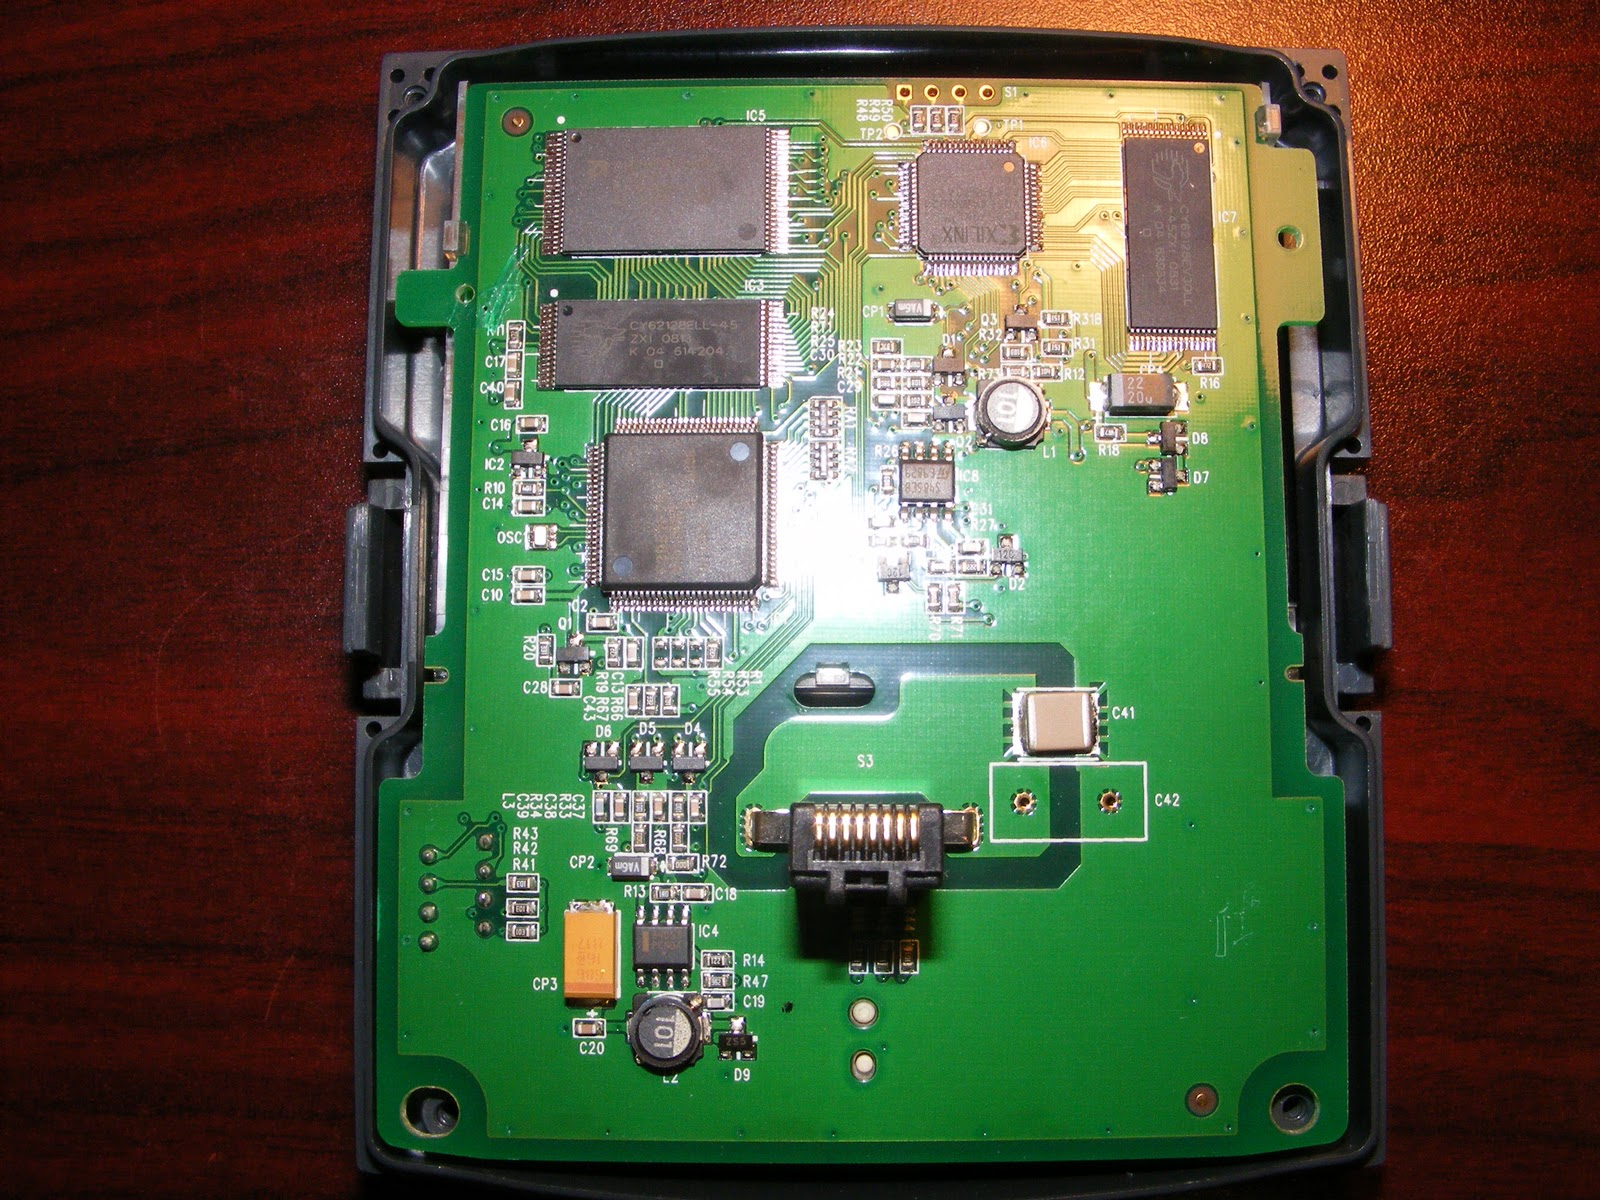 Motor Control Photos Vfd Conformal Coating